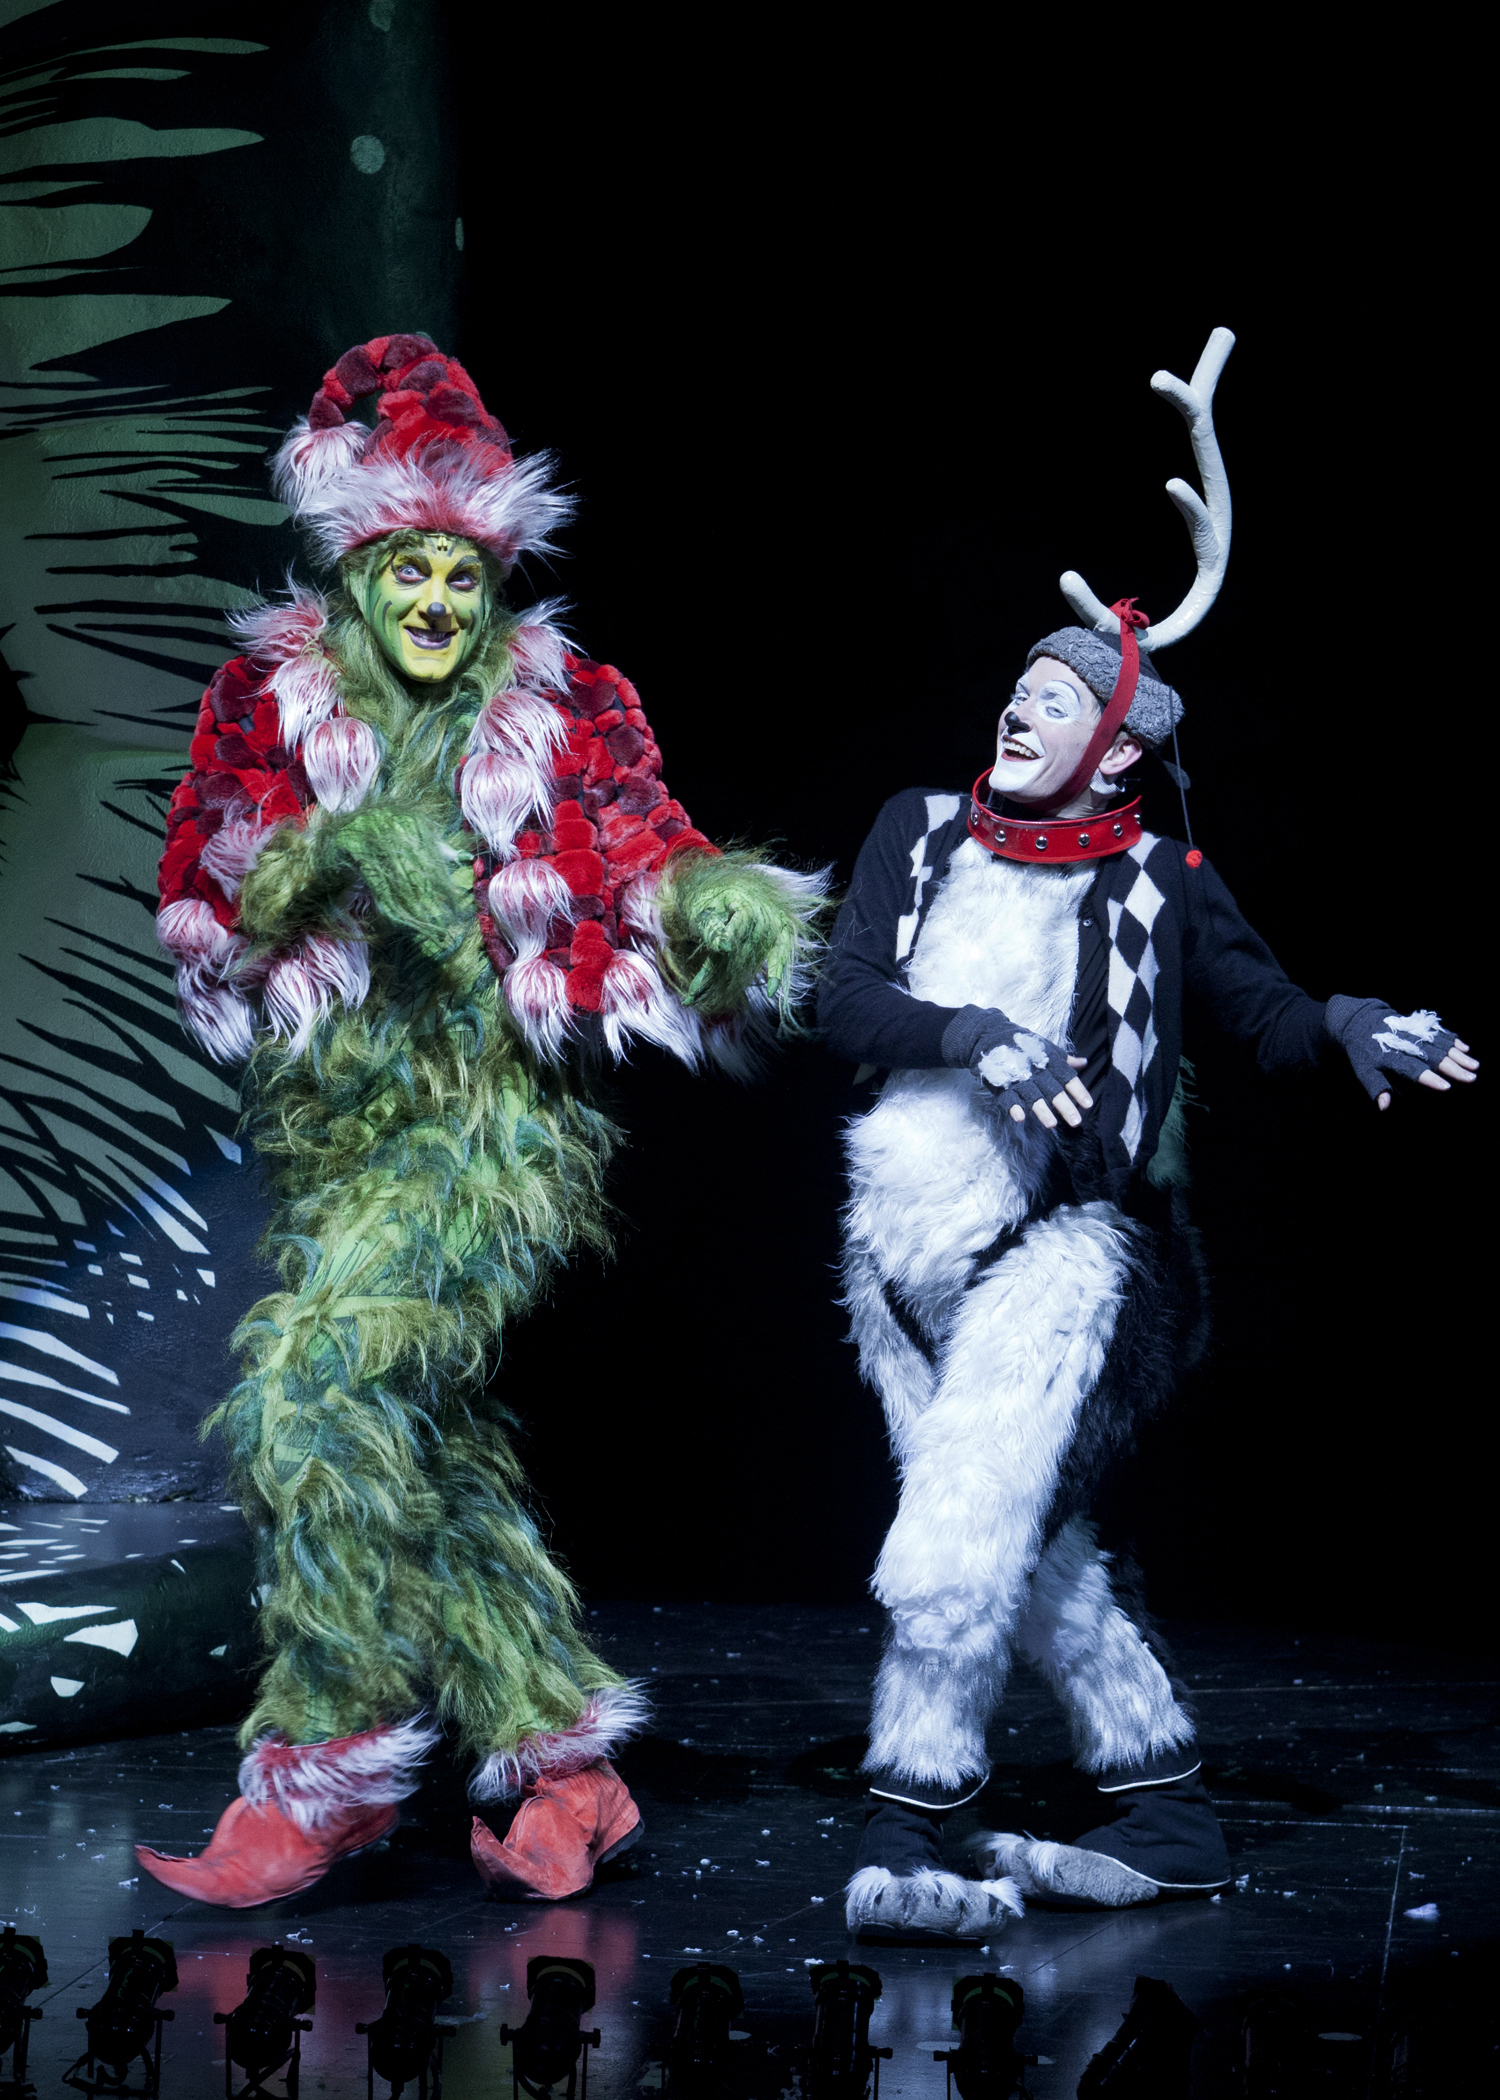 The Grinch Old Globe Theatre